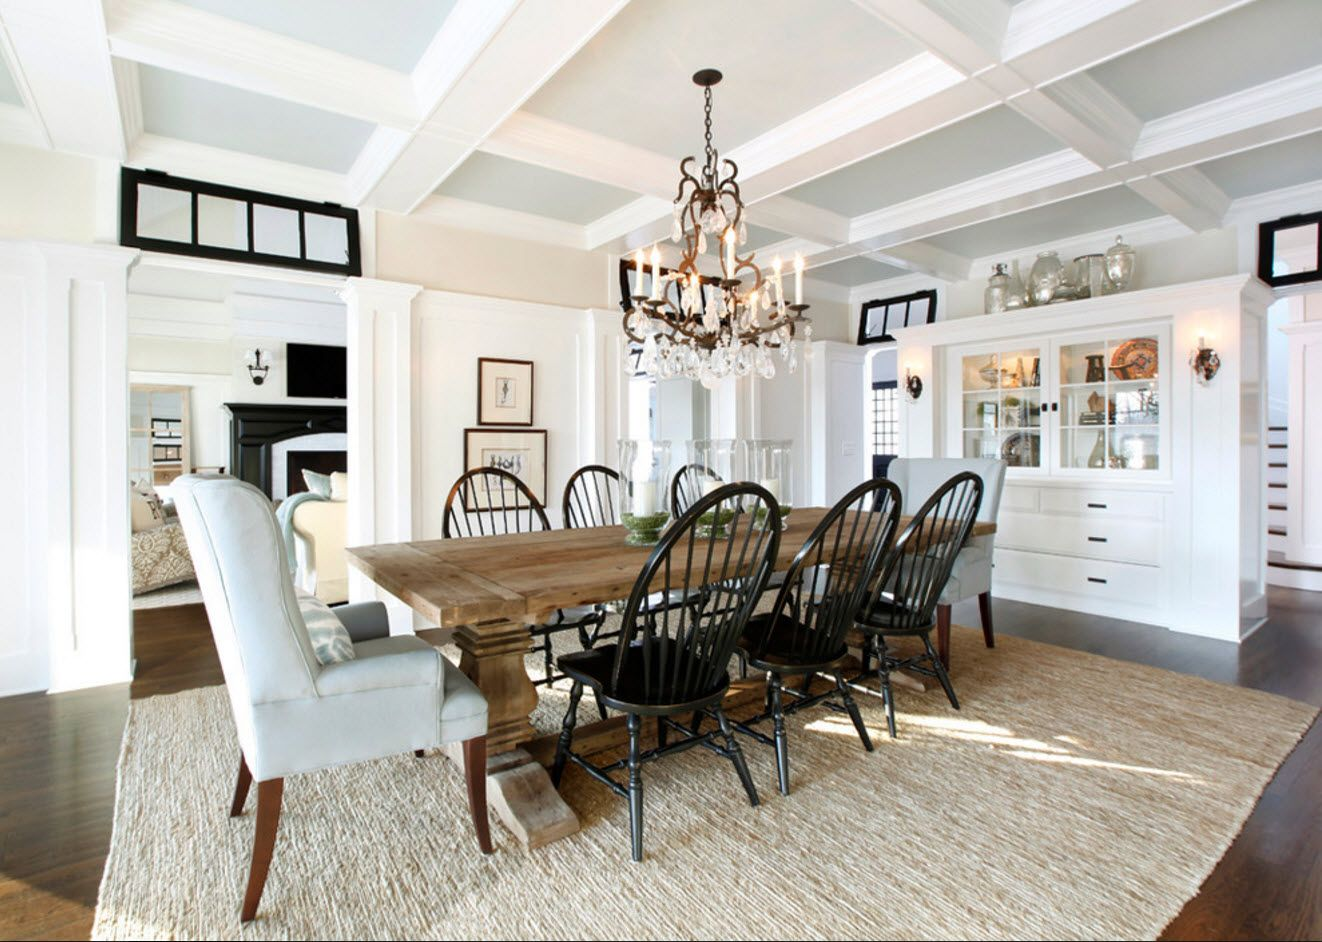 Light color sceheme for Mediterranean styled room with big table and many black chairs